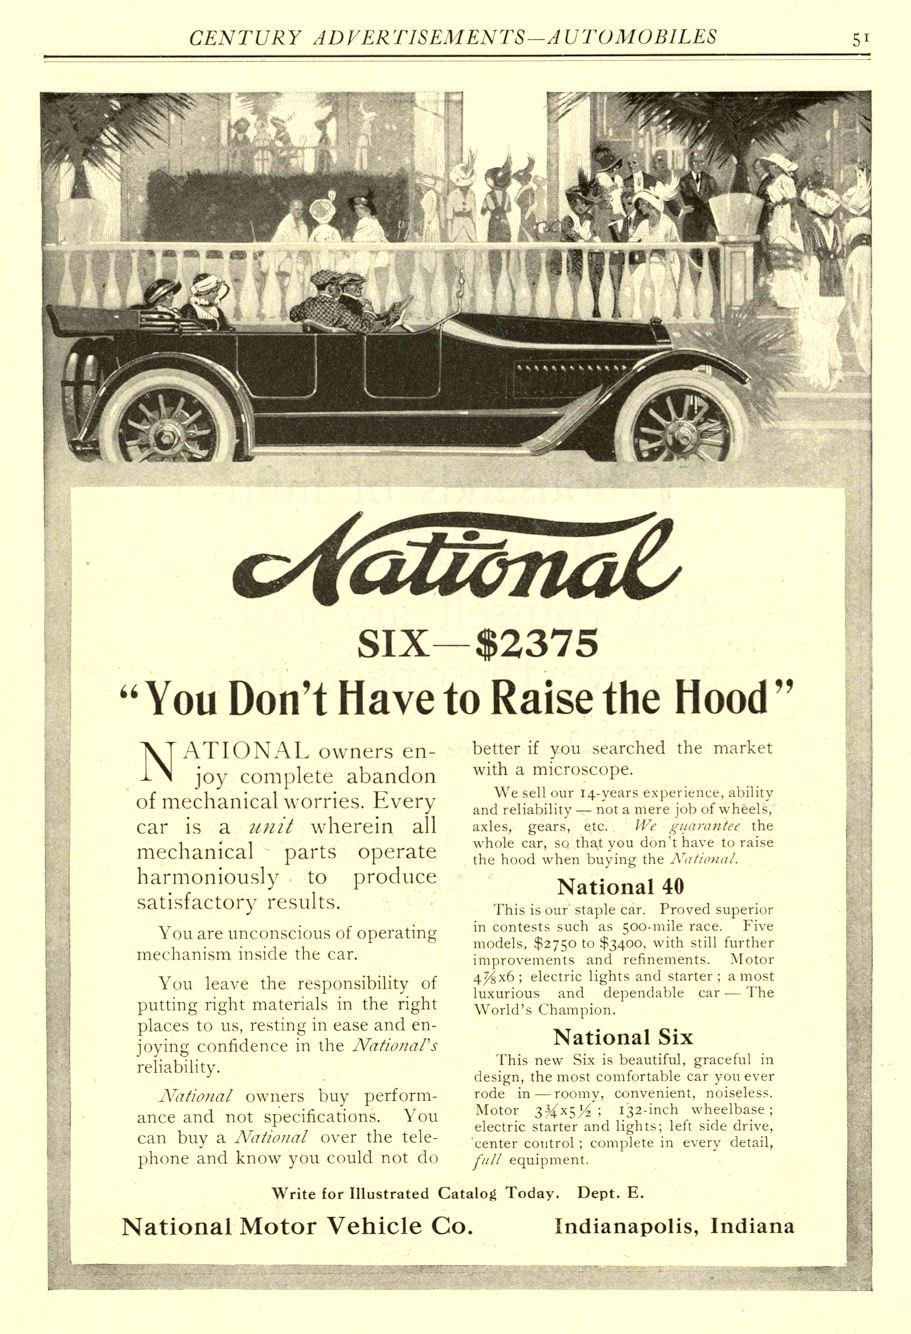 """1914 4 NATIONAL """"You Don't Have to Raise the Hood"""" National Motor Vehicle Co. Indianapolis, IND Century Advertisements—Automobiles April 1914 6.5″x9.75″ page 51"""